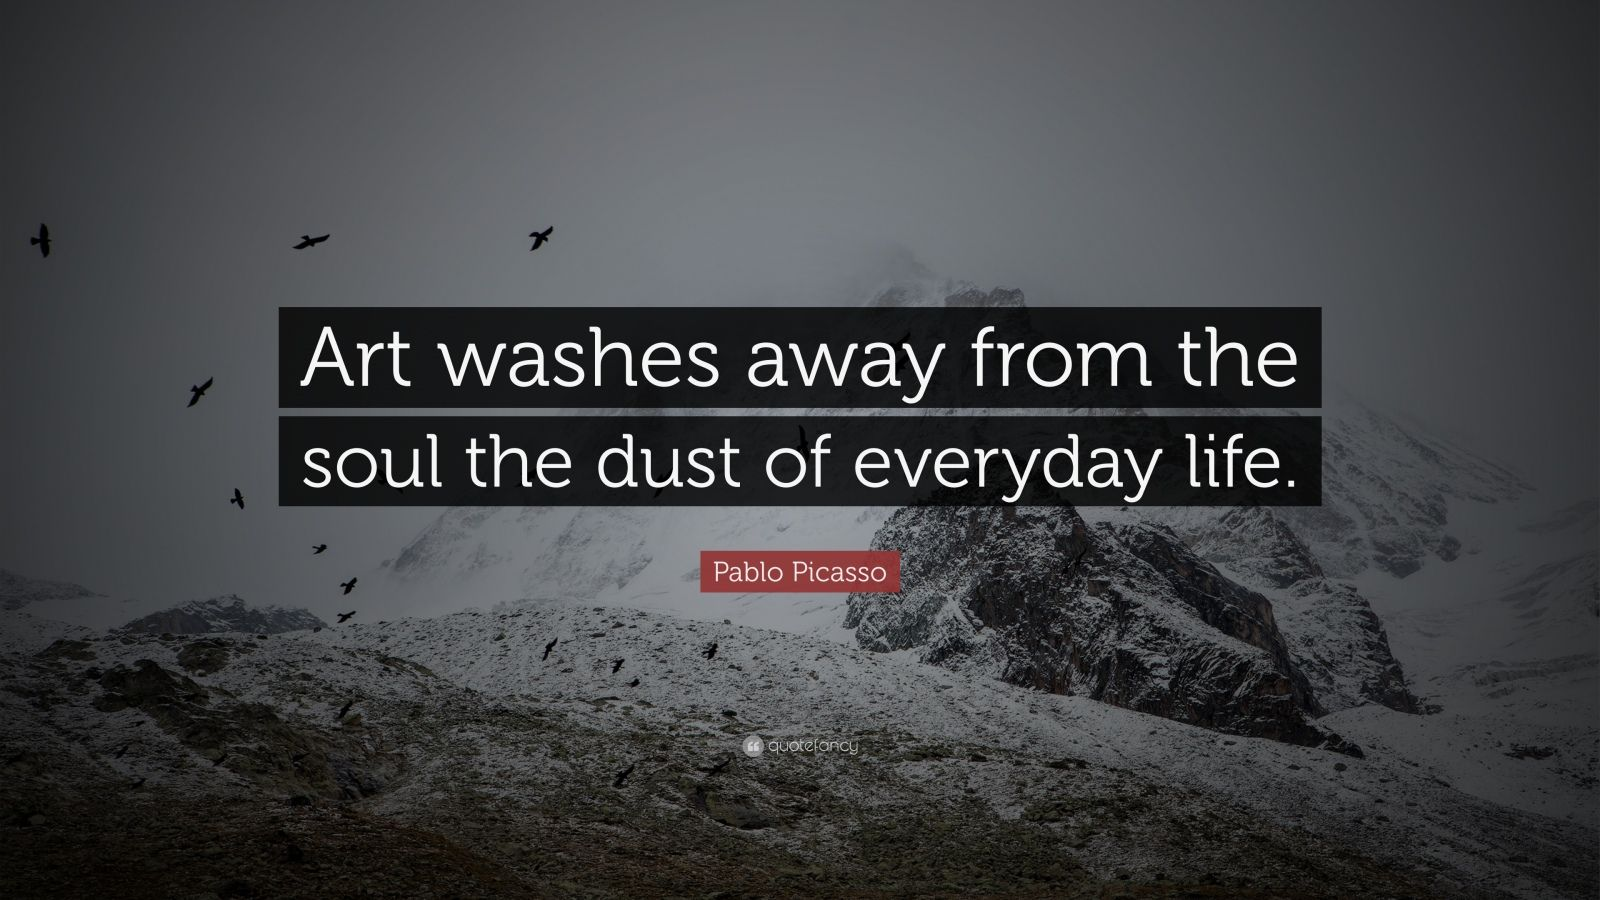 art washes away from the soul the dust of everyday life Art washes away from the soul the dust of everyday life pablo picasso.